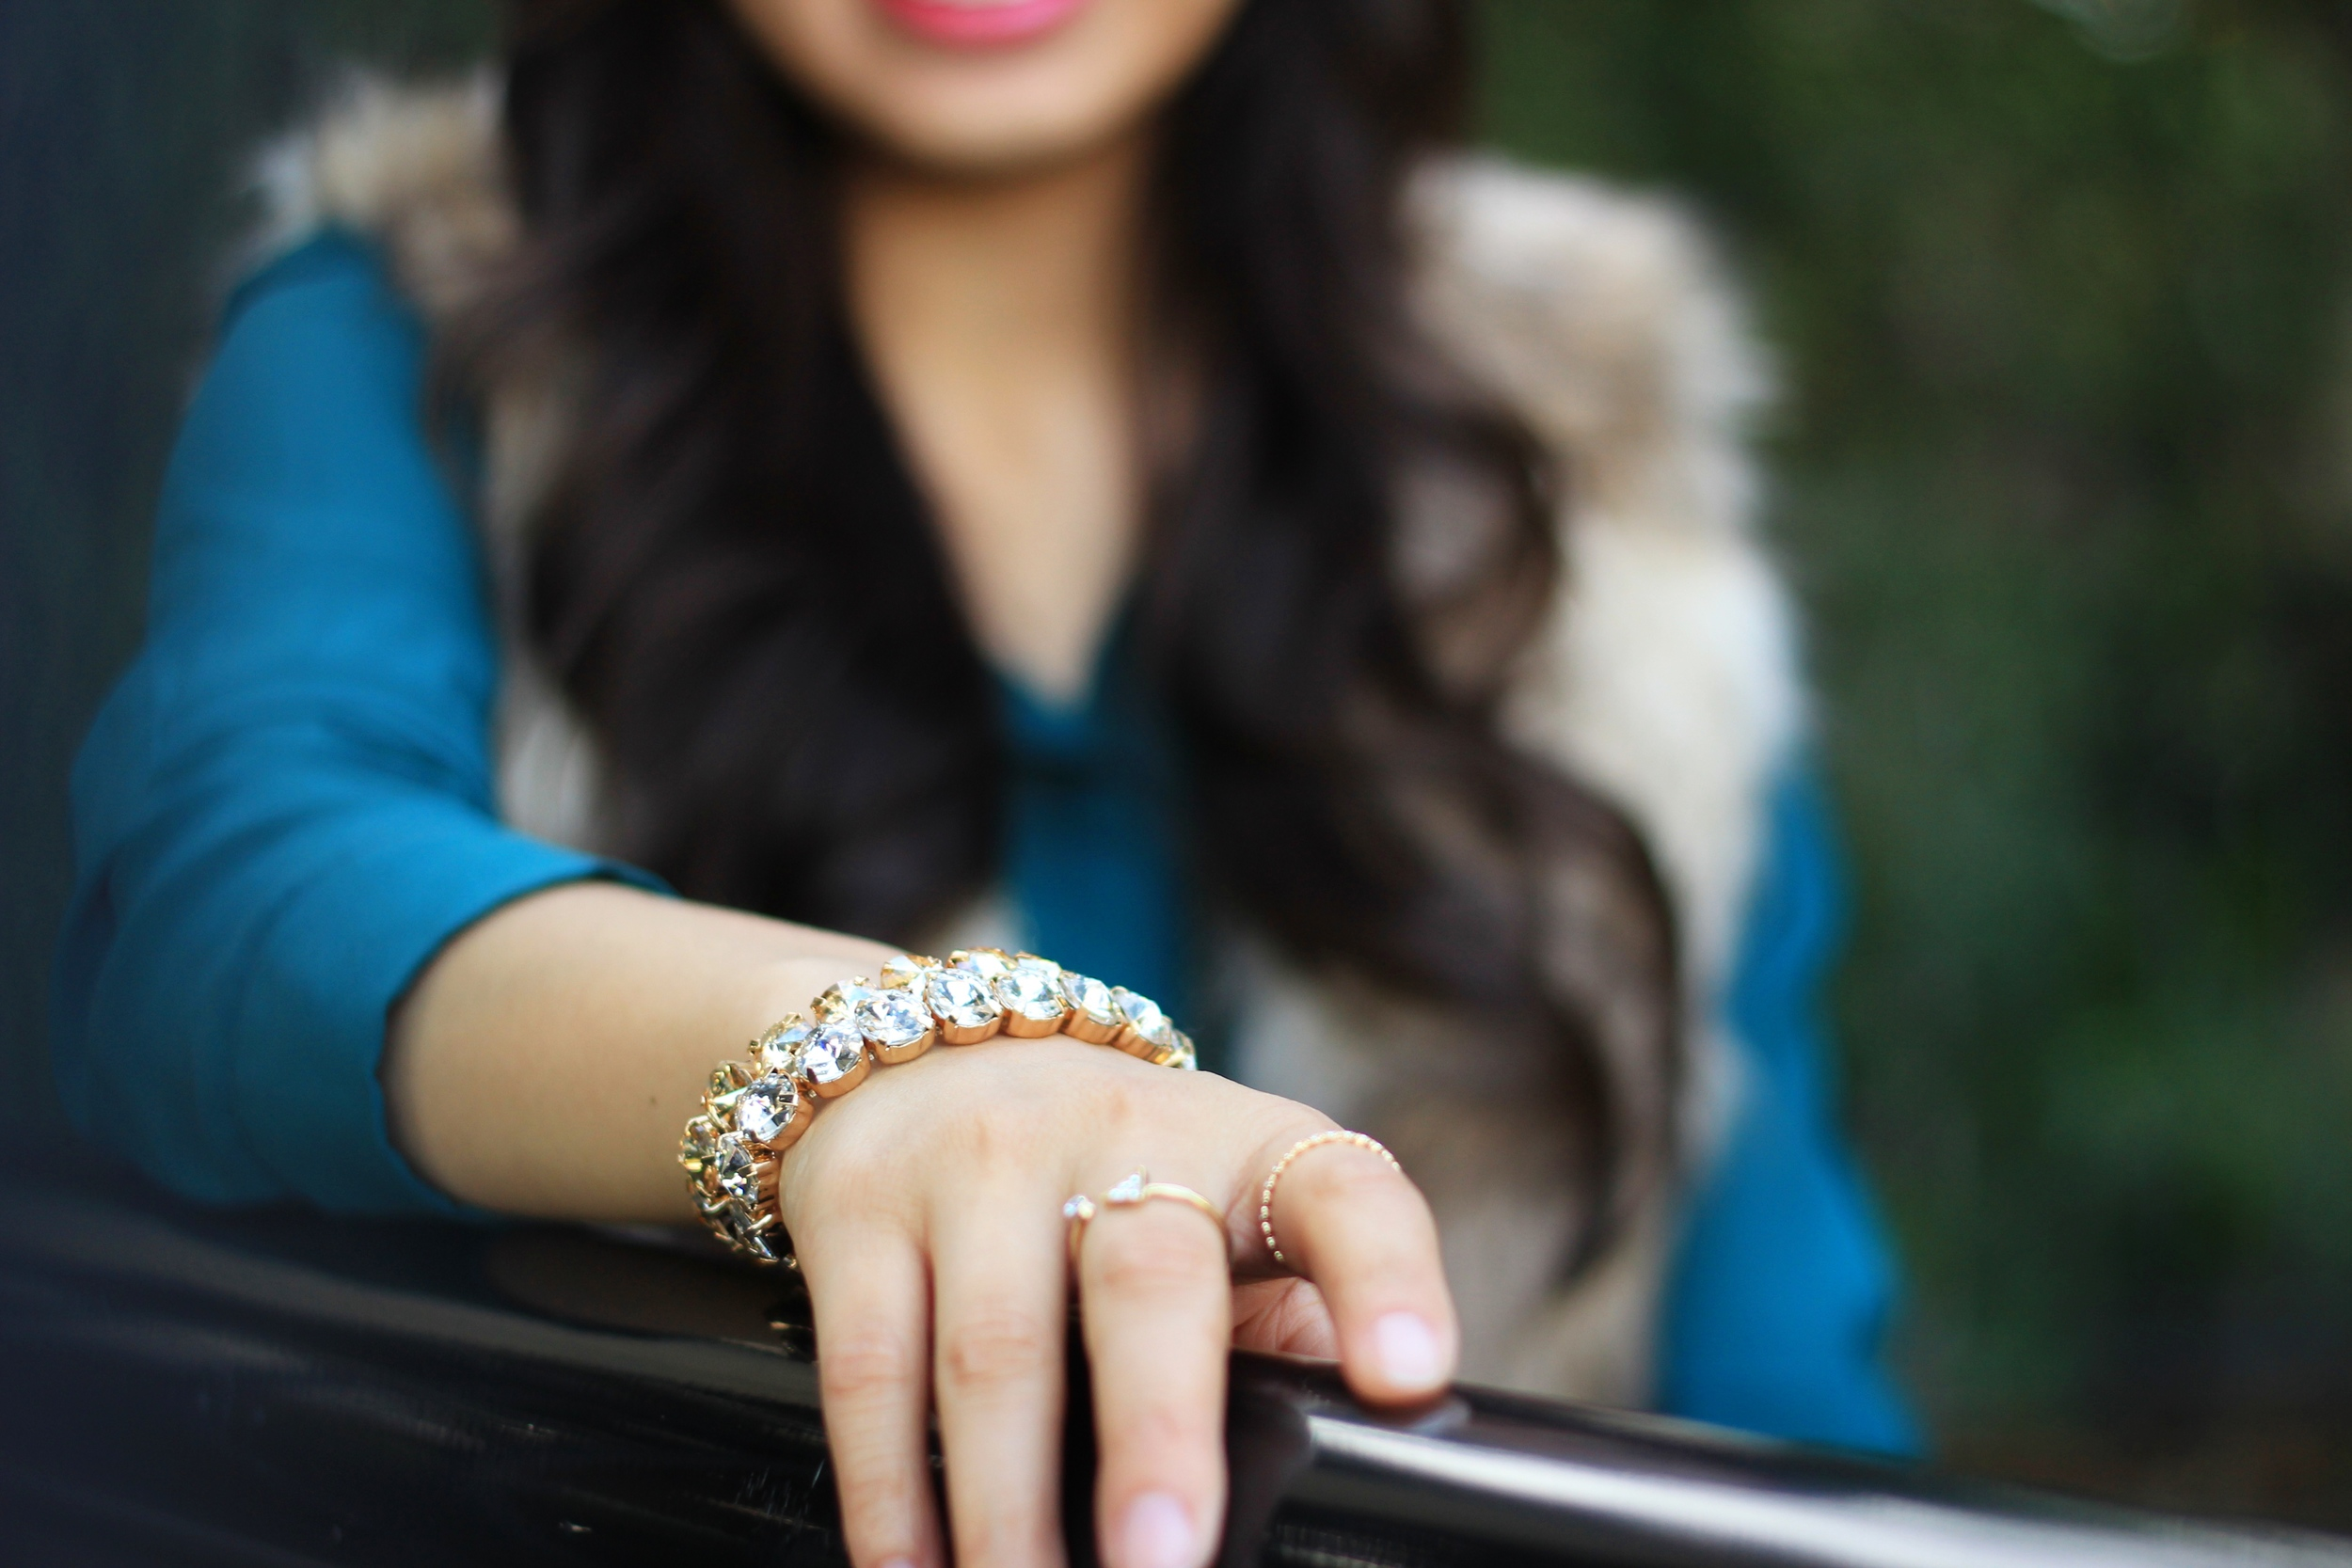 Fall fashion with faux fur vest, booties, and statement jewelry from The Dot online jewelry shop